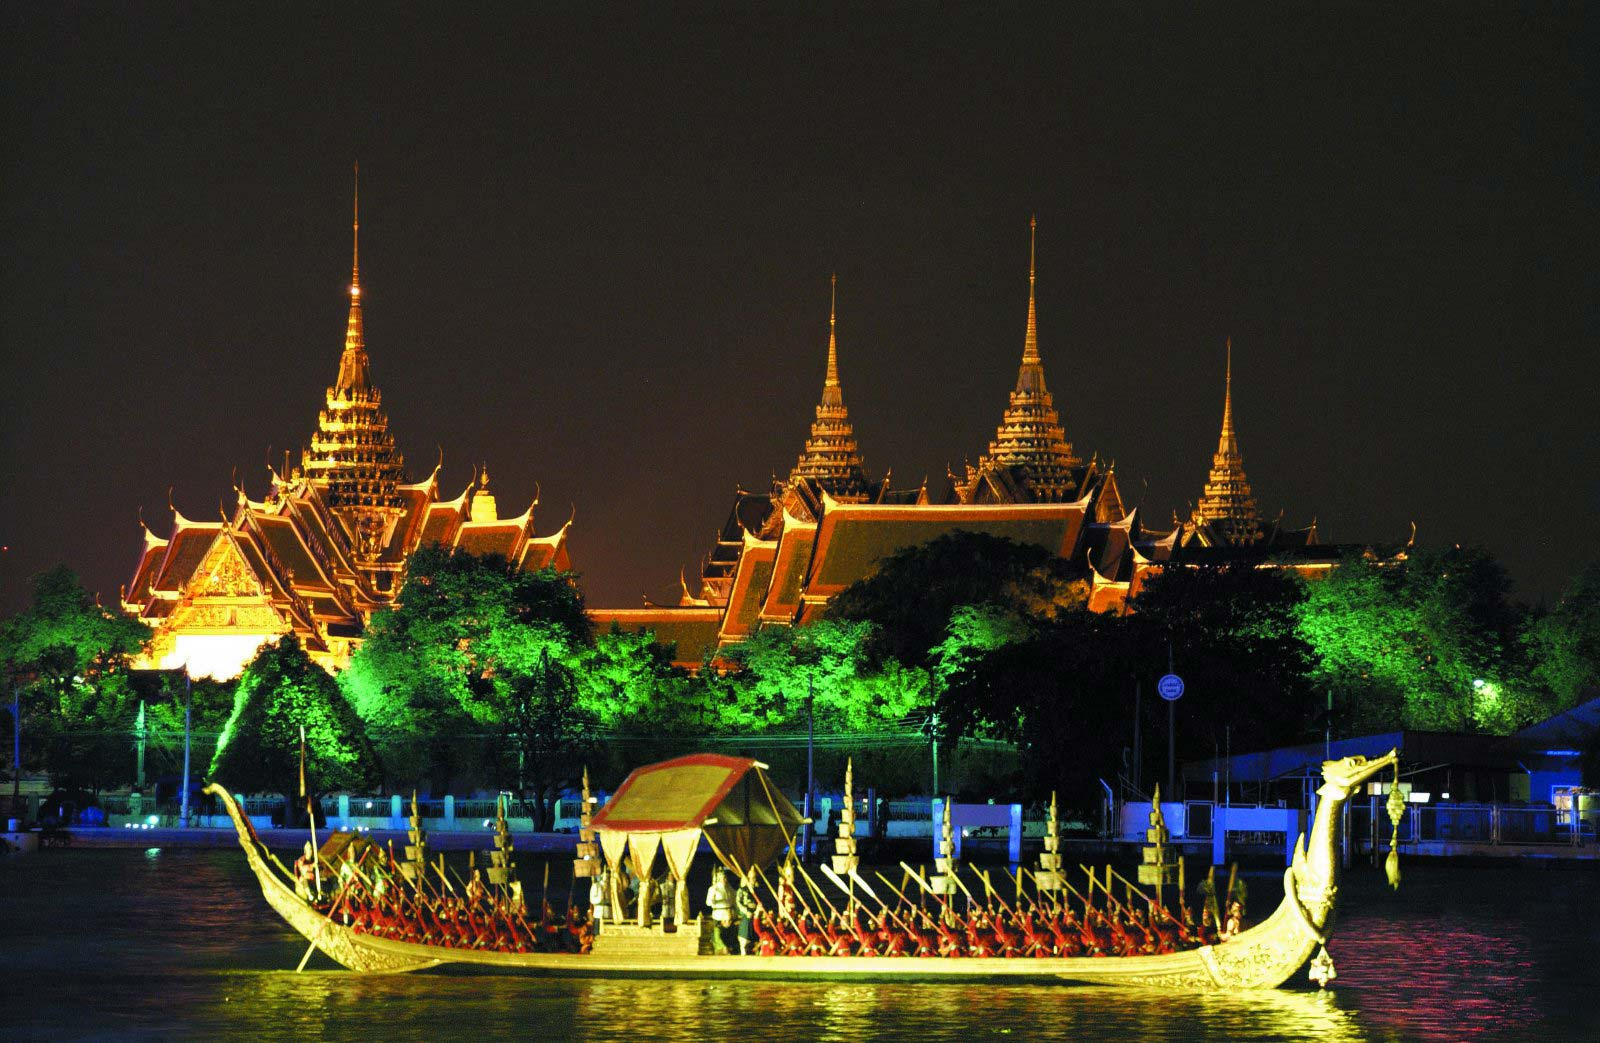 Indonesia + Thailand Holiday Travel & Tour Package